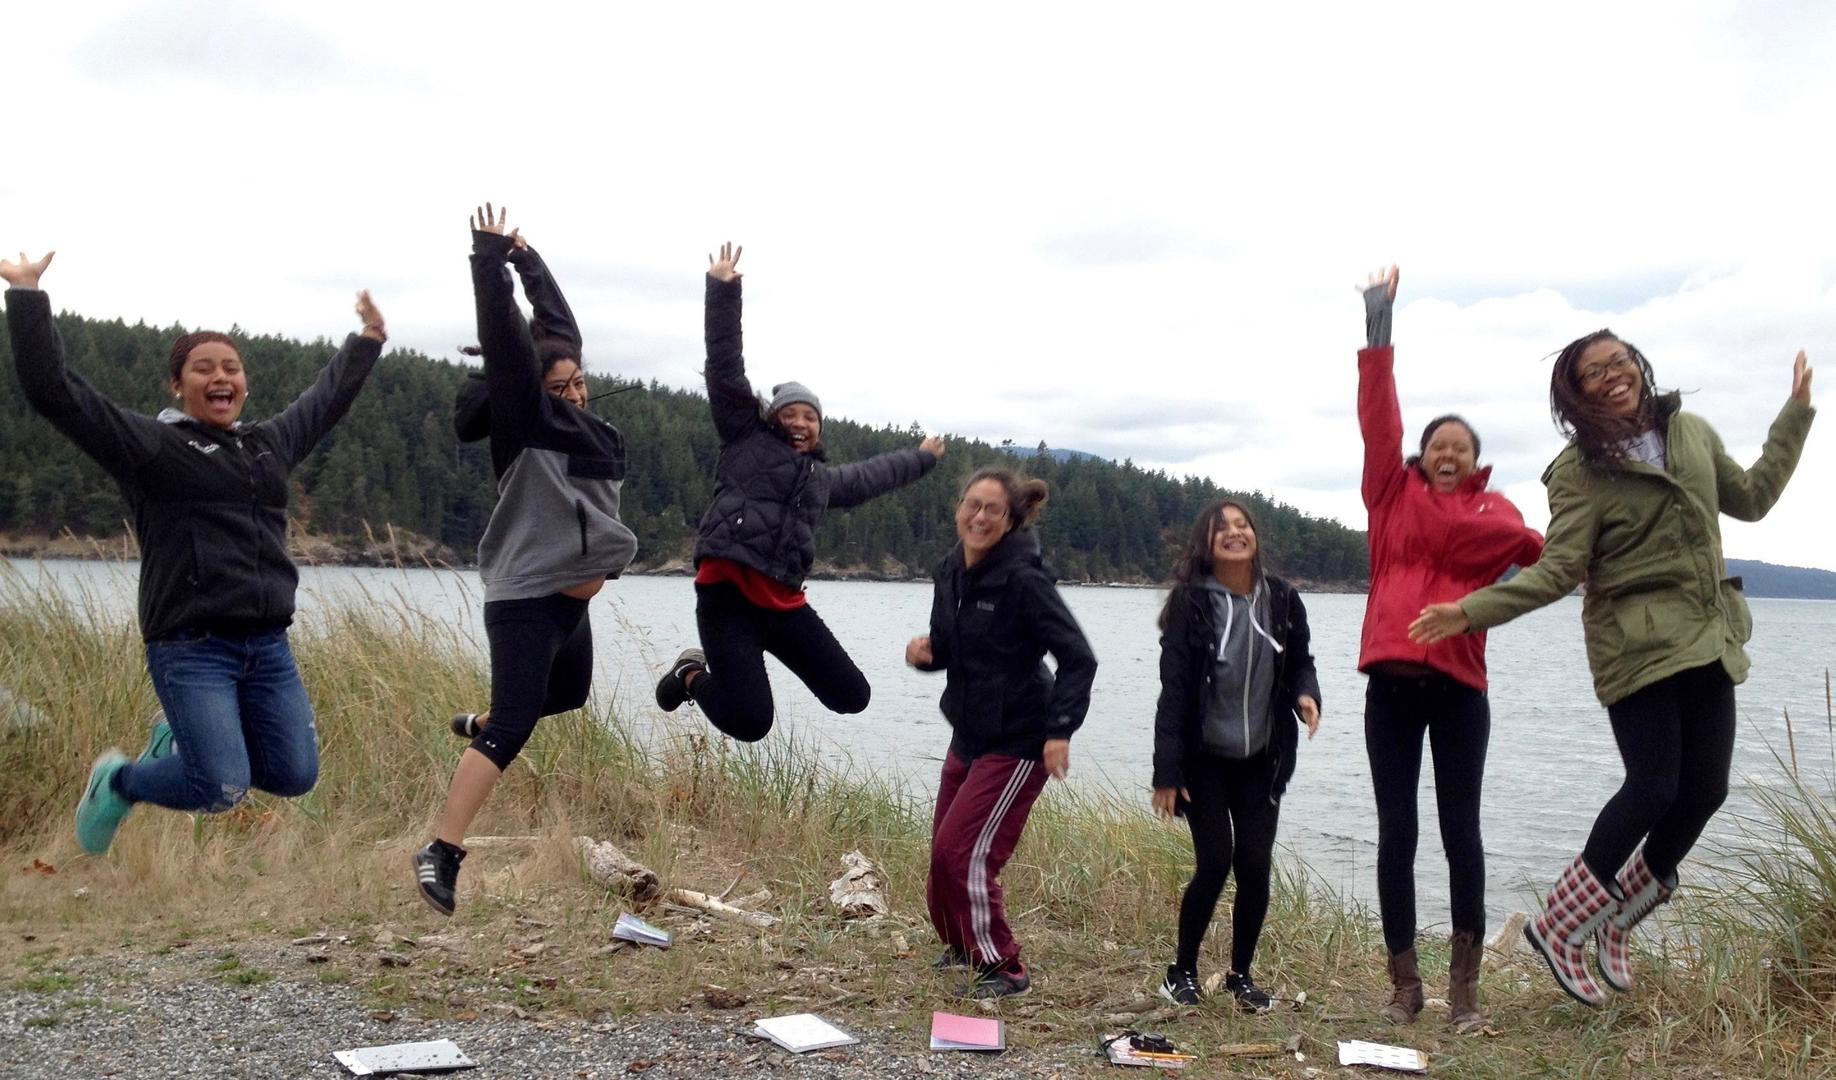 """Five students jump in the hair for a """"High School Musical"""" style pose, two remain on the ground, mid-jump."""